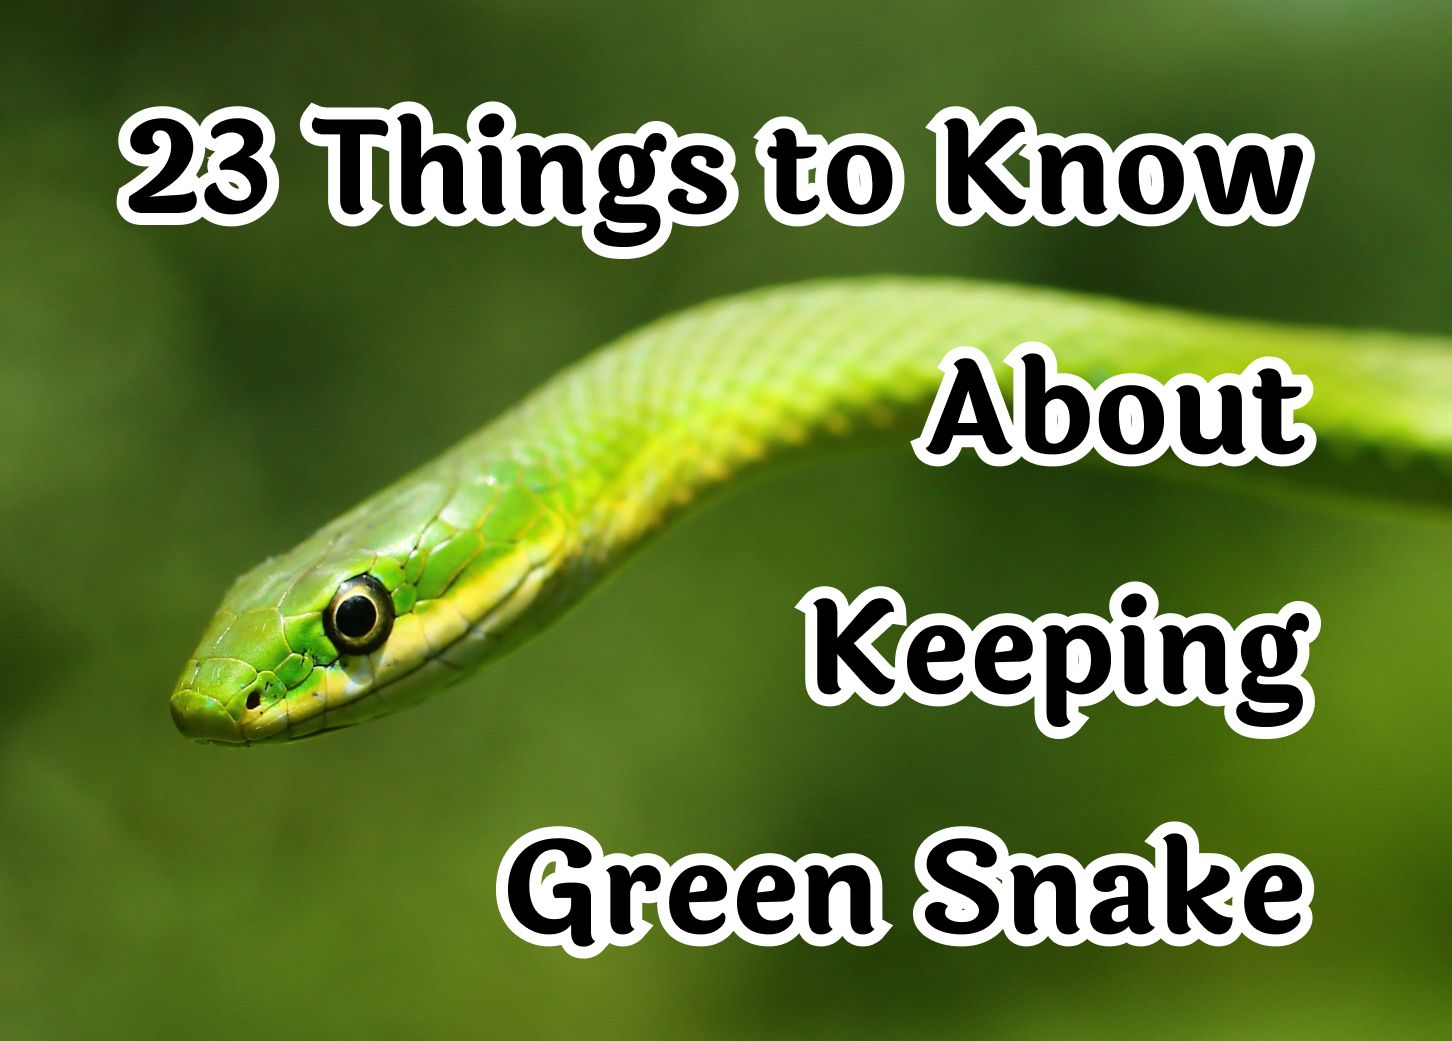 23 Crucial Things to Know About the Green Snake